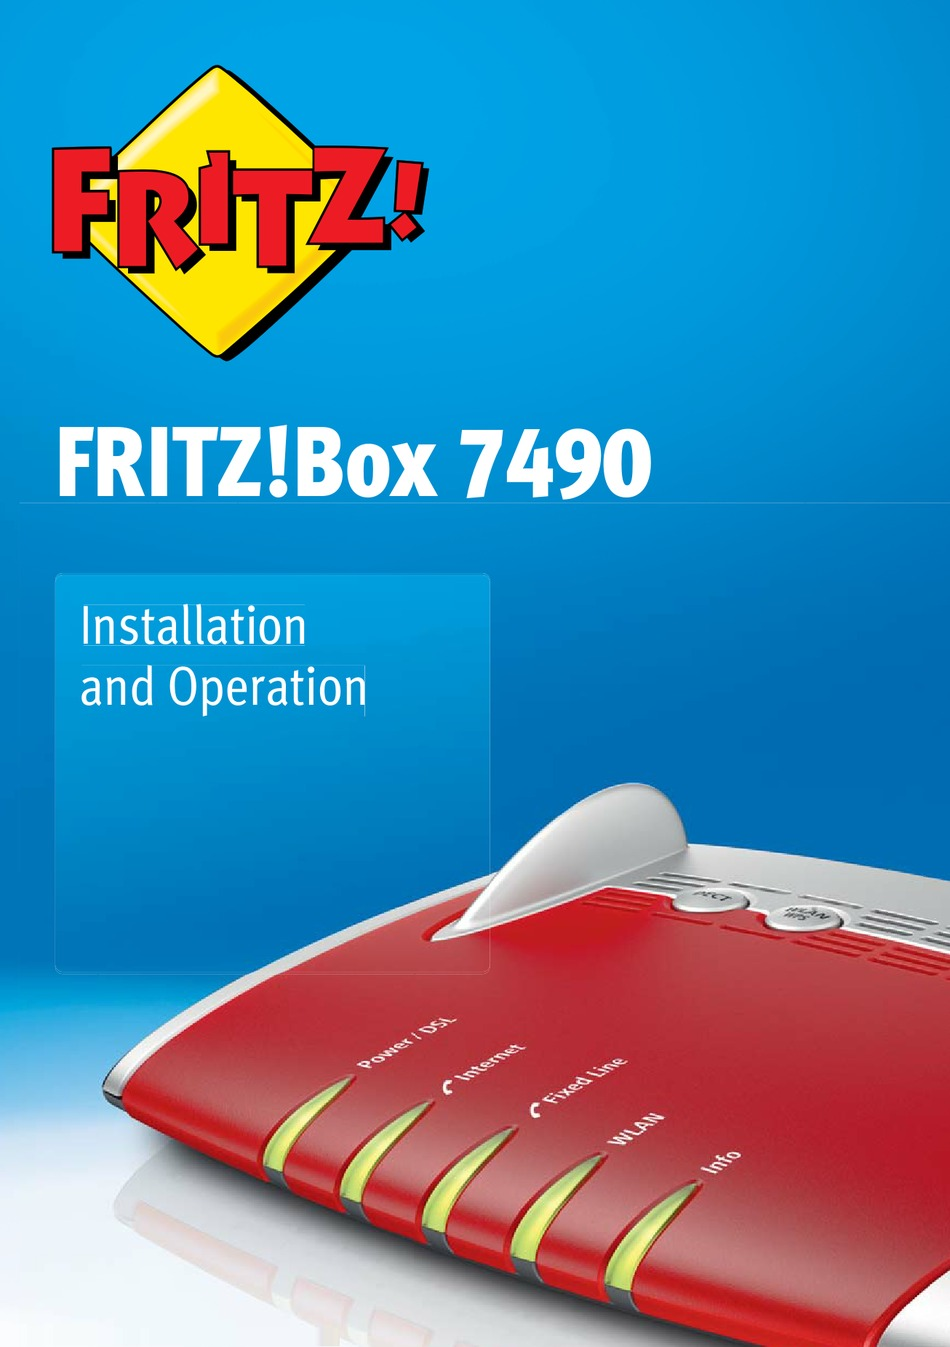 FRITZ BOX 20 INSTALLATION AND OPERATION MANUAL Pdf Download ...